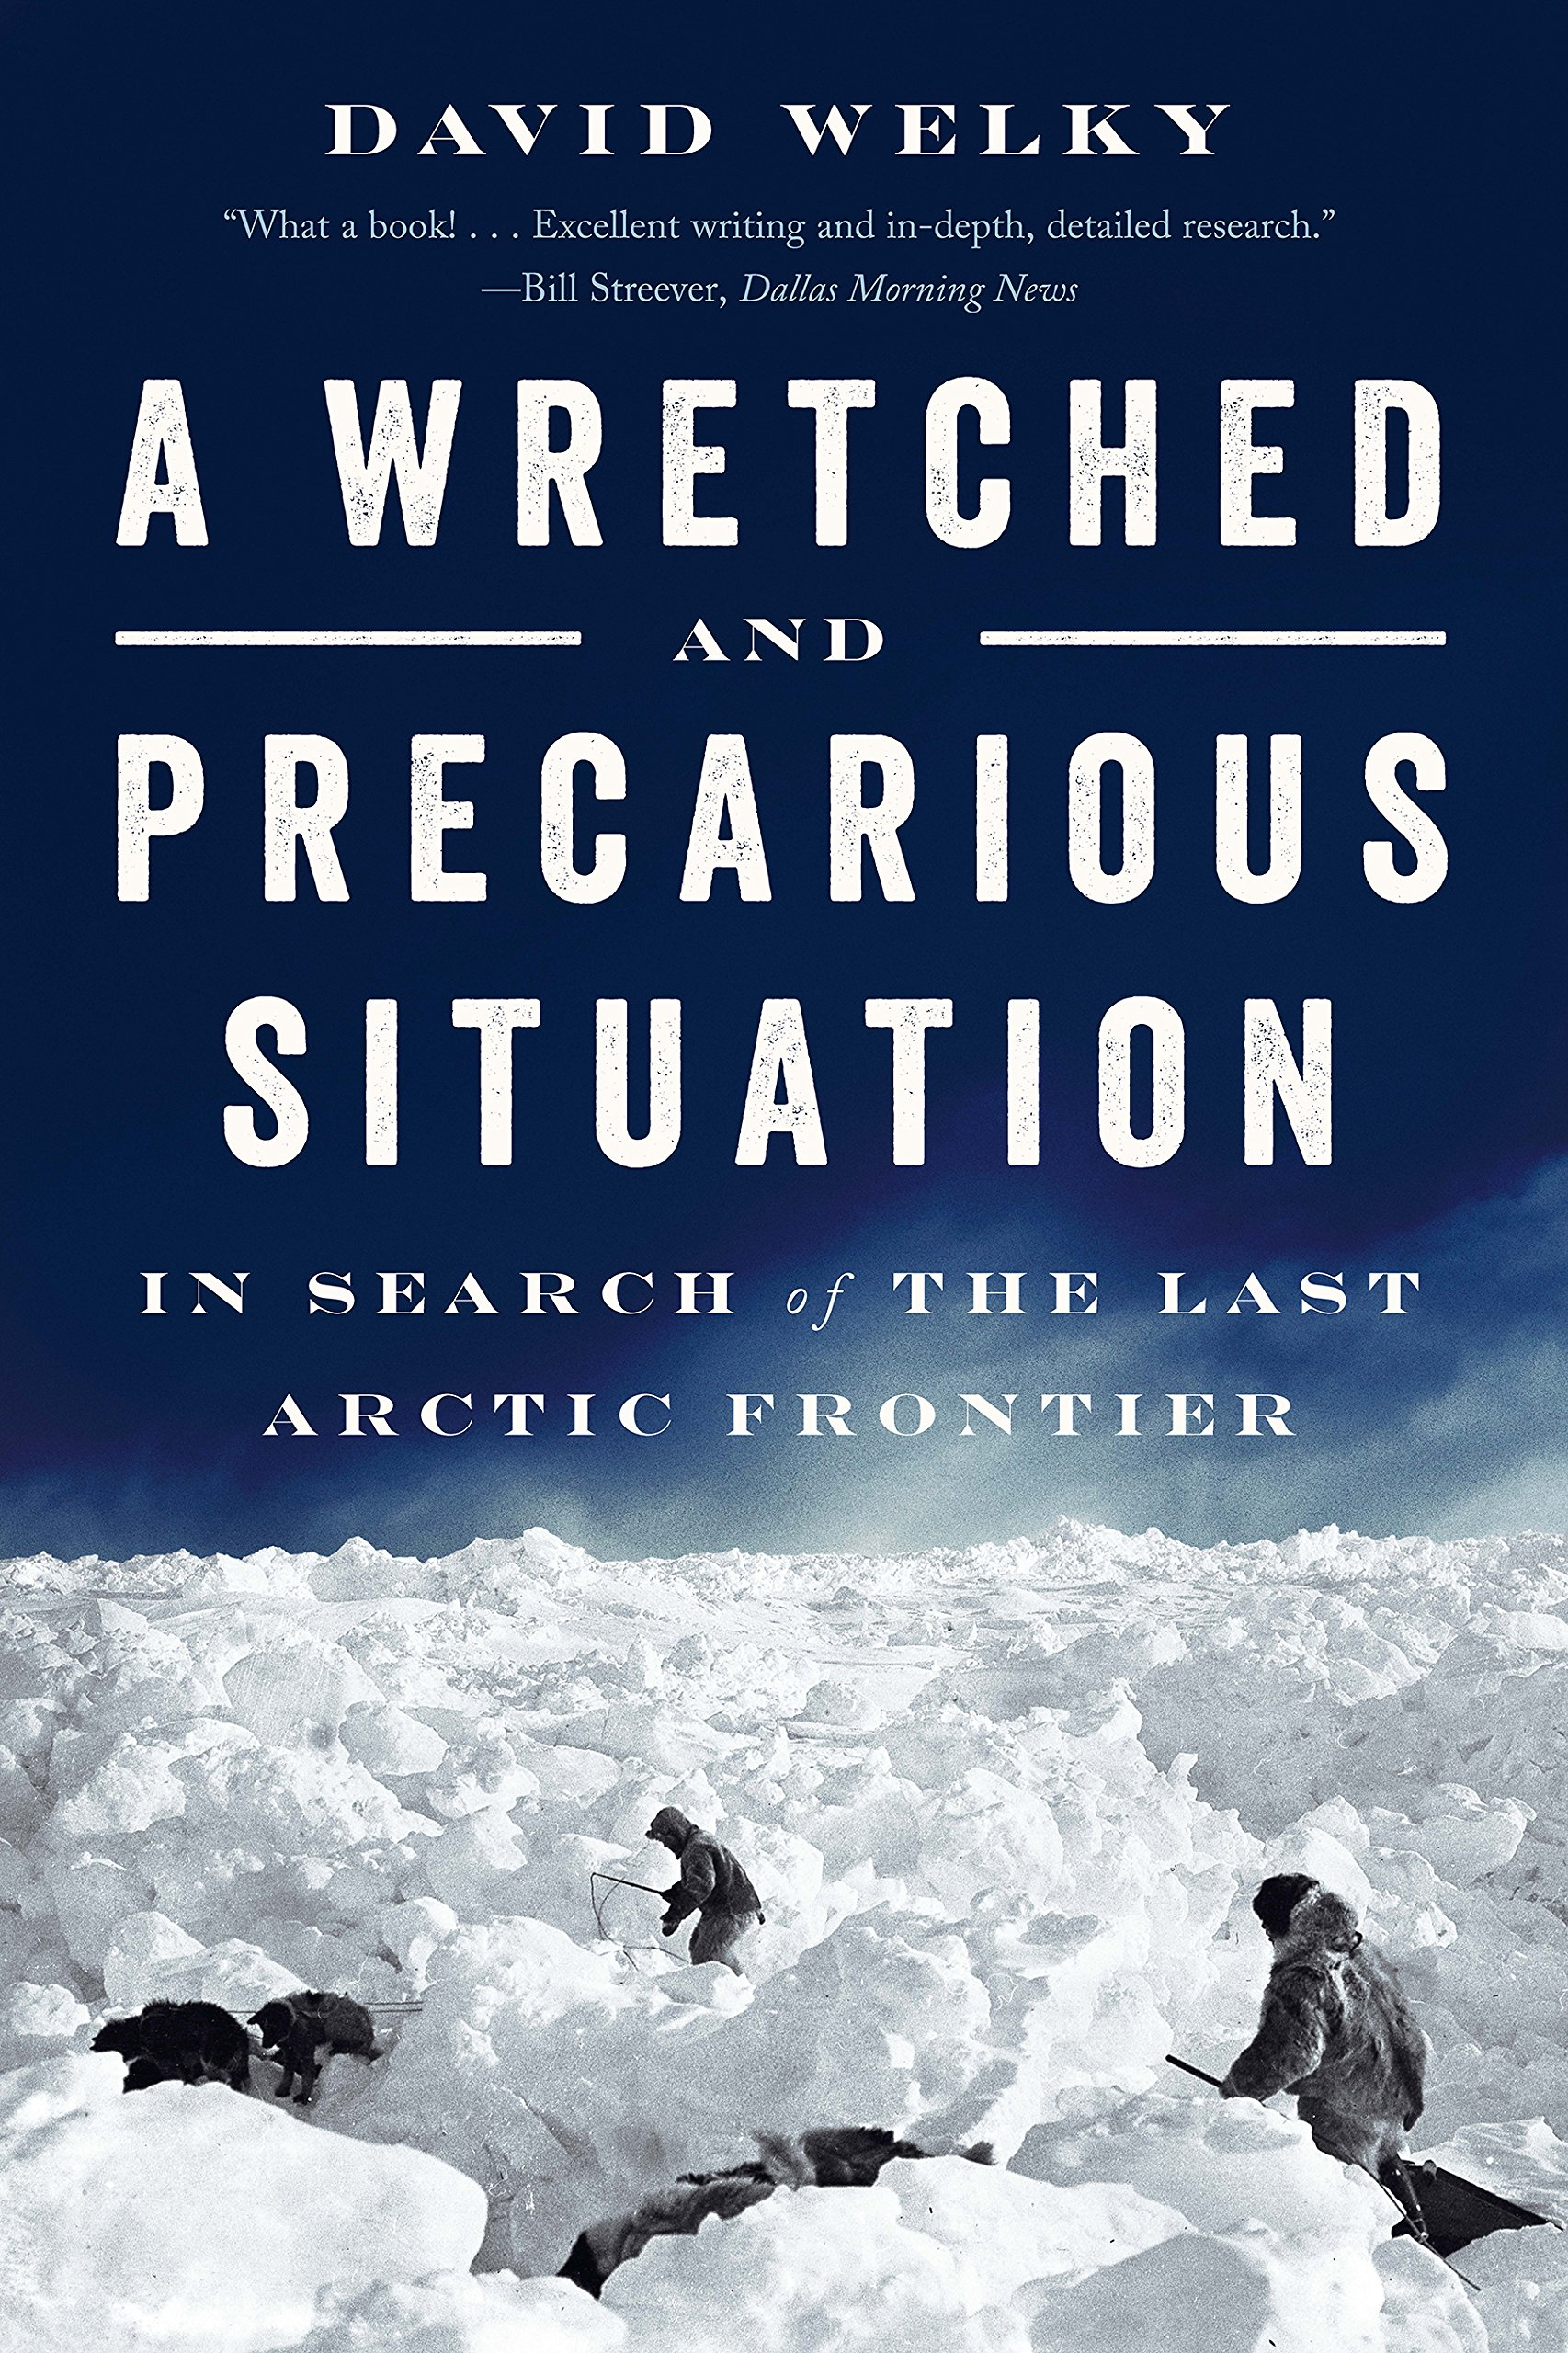 Image for A Wretched and Precarious Situation: In Search of the Last Arctic Frontier